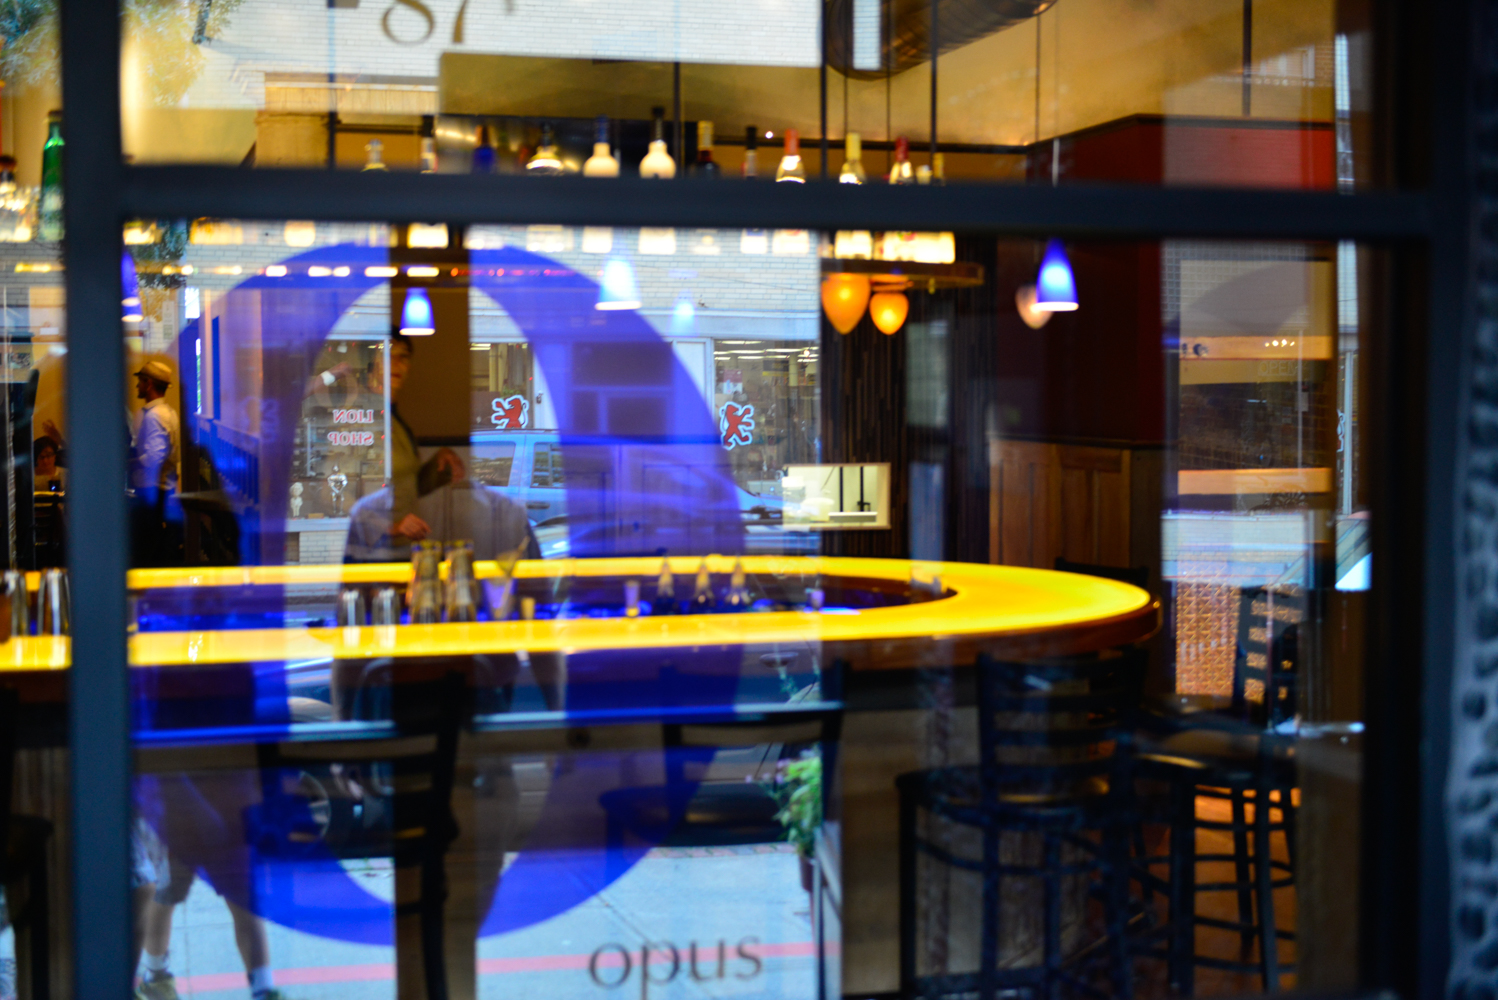 Opus New Year's Eve Special